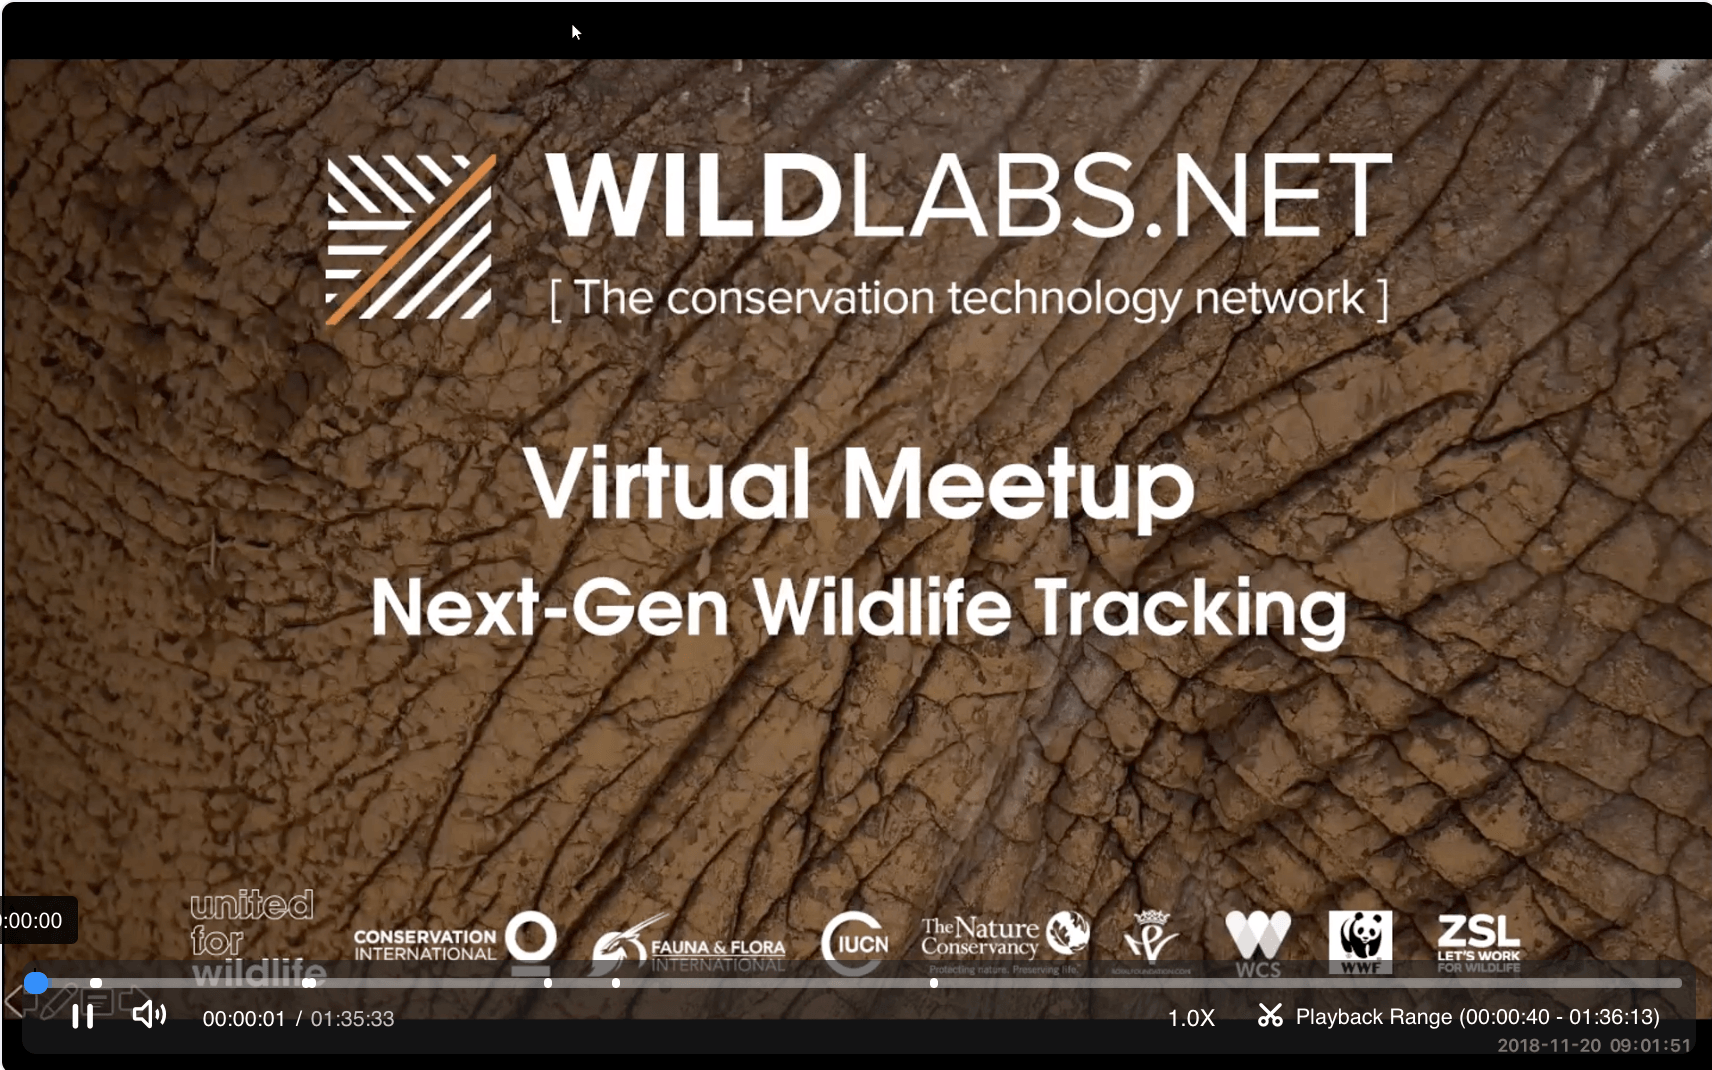 WILDLABS Virtual Meetup Link to Tracking Video Recording